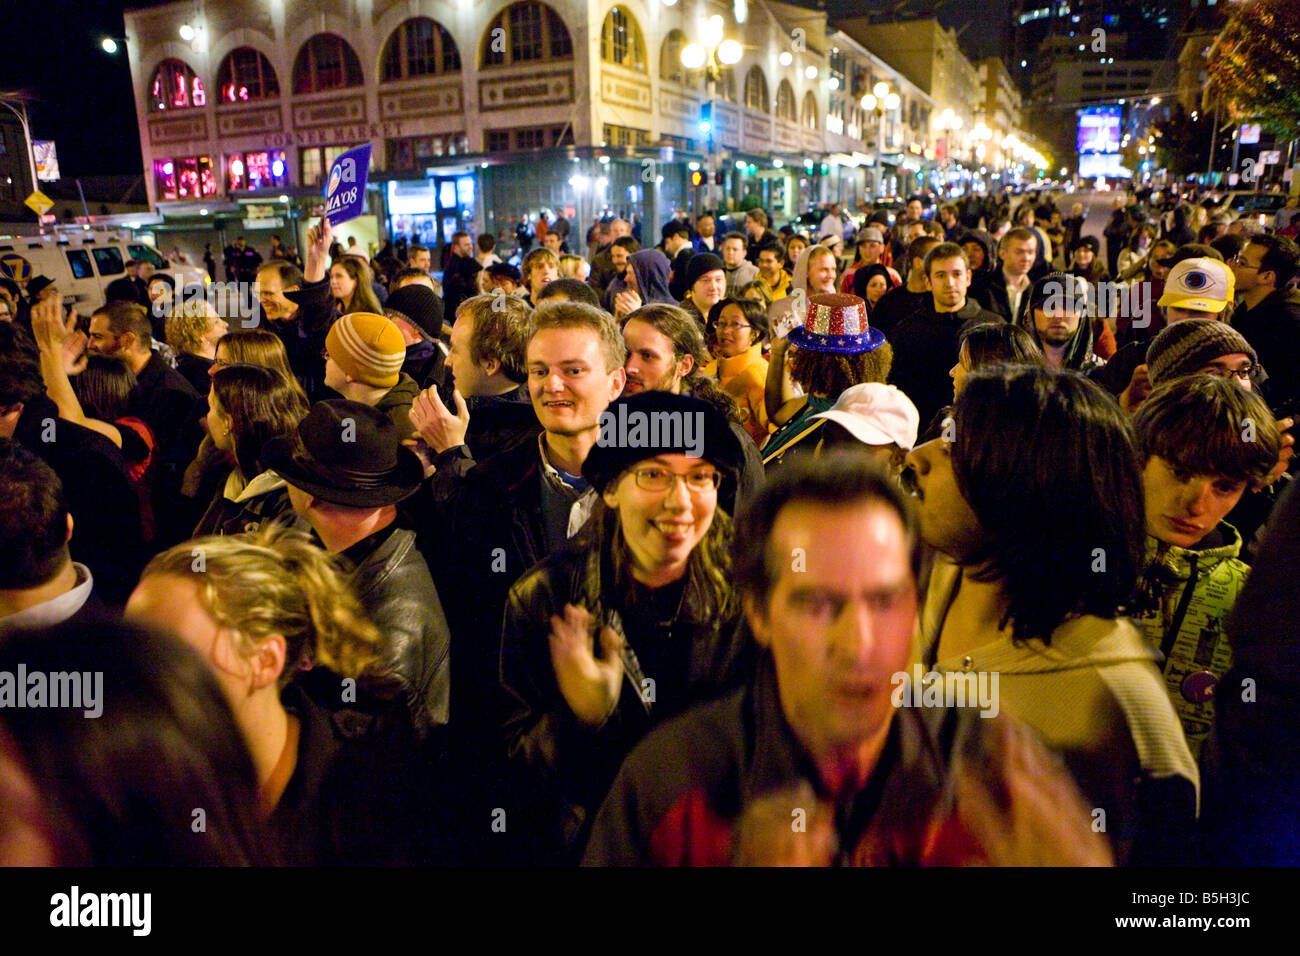 Seattle, 04.11. 2008. People gather spontaneously on the streets of Seattle to celebrate the historic victory of - Stock Image